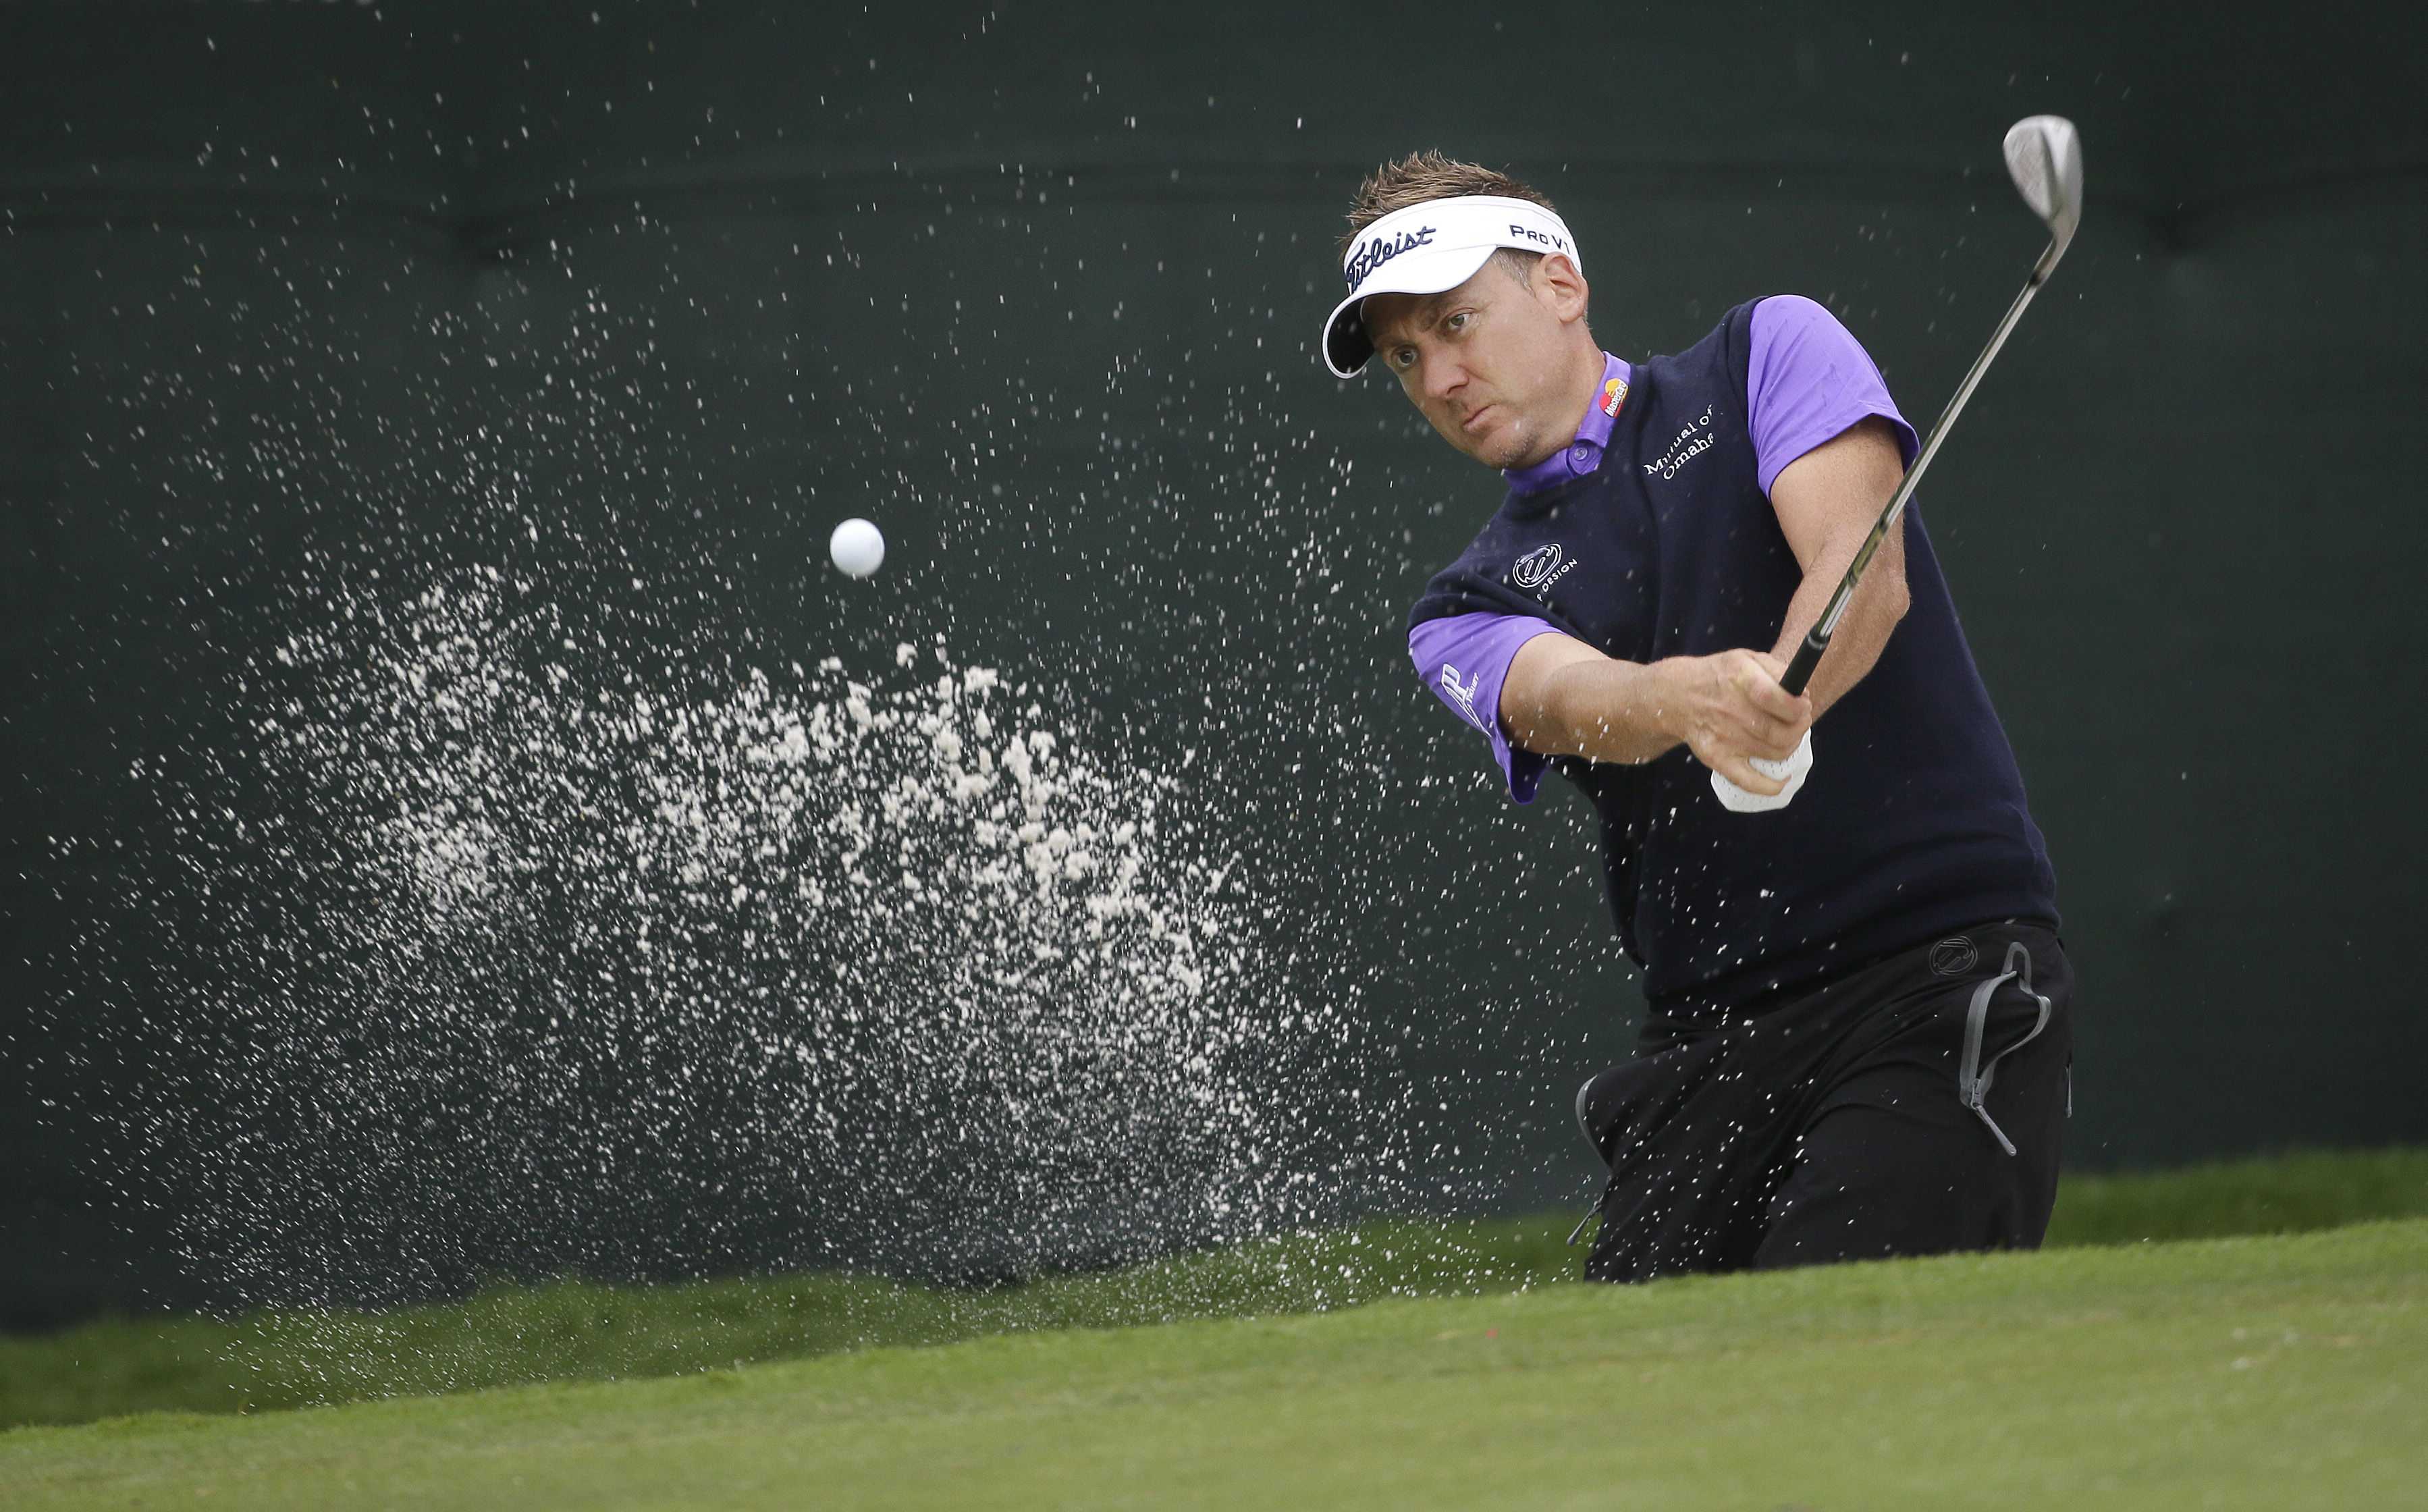 Ian Poulter hits from the sand on the ninth hole during the second round of the Colonial golf tournament, Friday, May 22, 2015, in Fort Worth, Texas. (AP Photo/LM Otero)